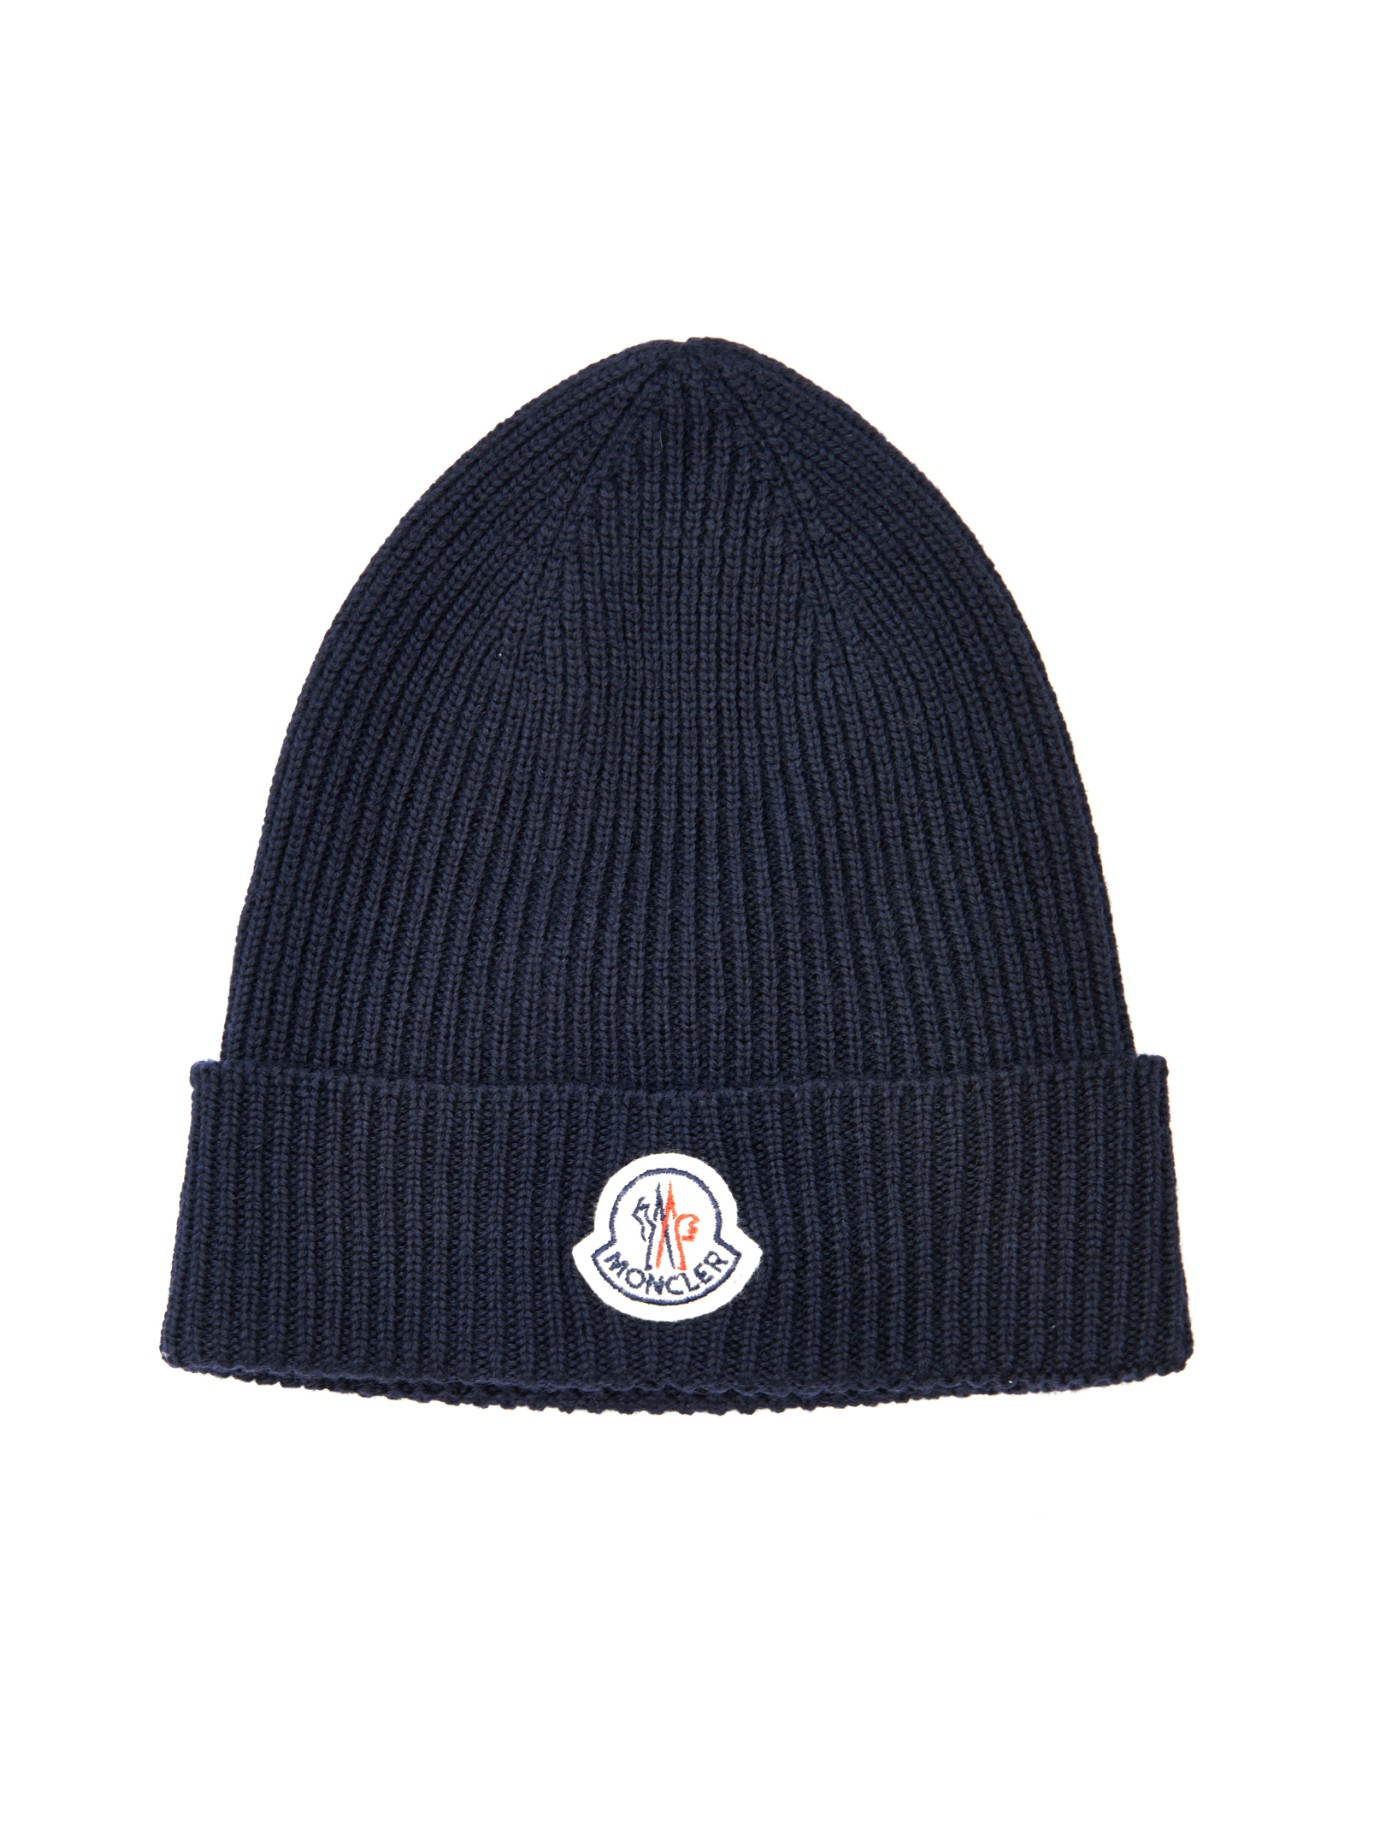 Moncler Beanie Hat Navy